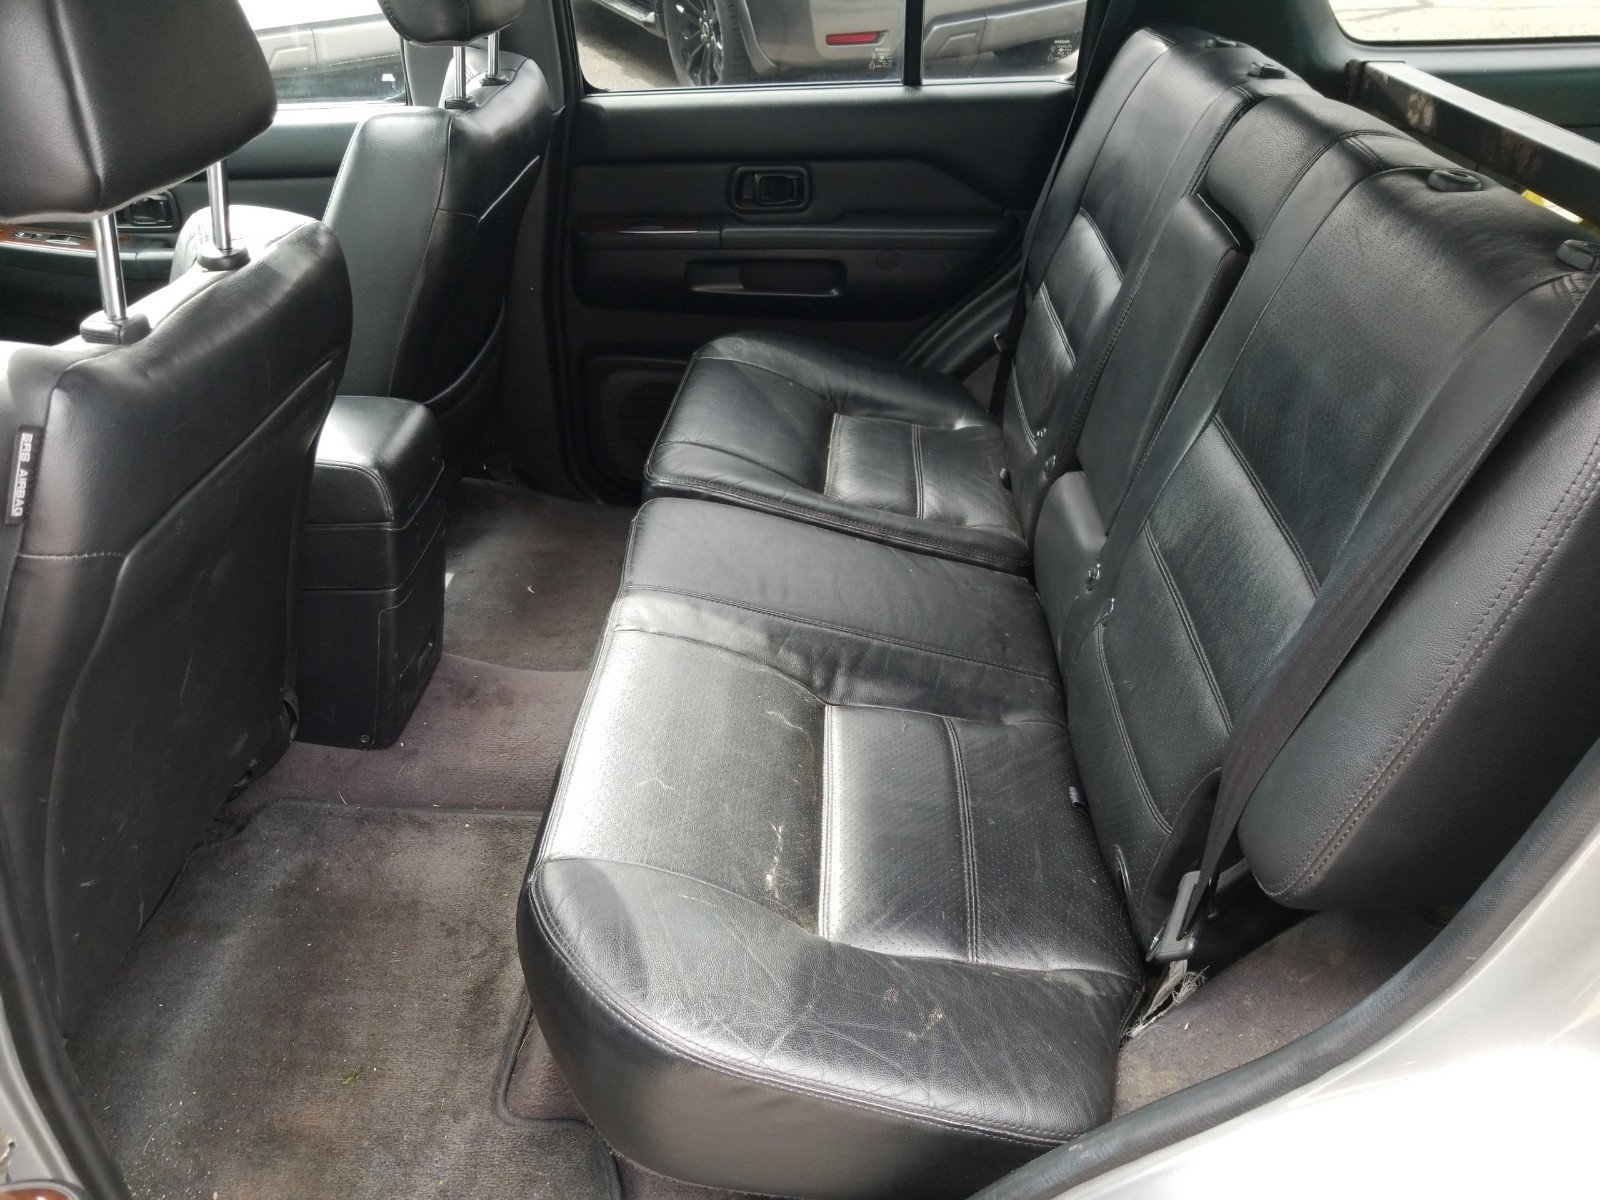 2001 pathfinder seat covers